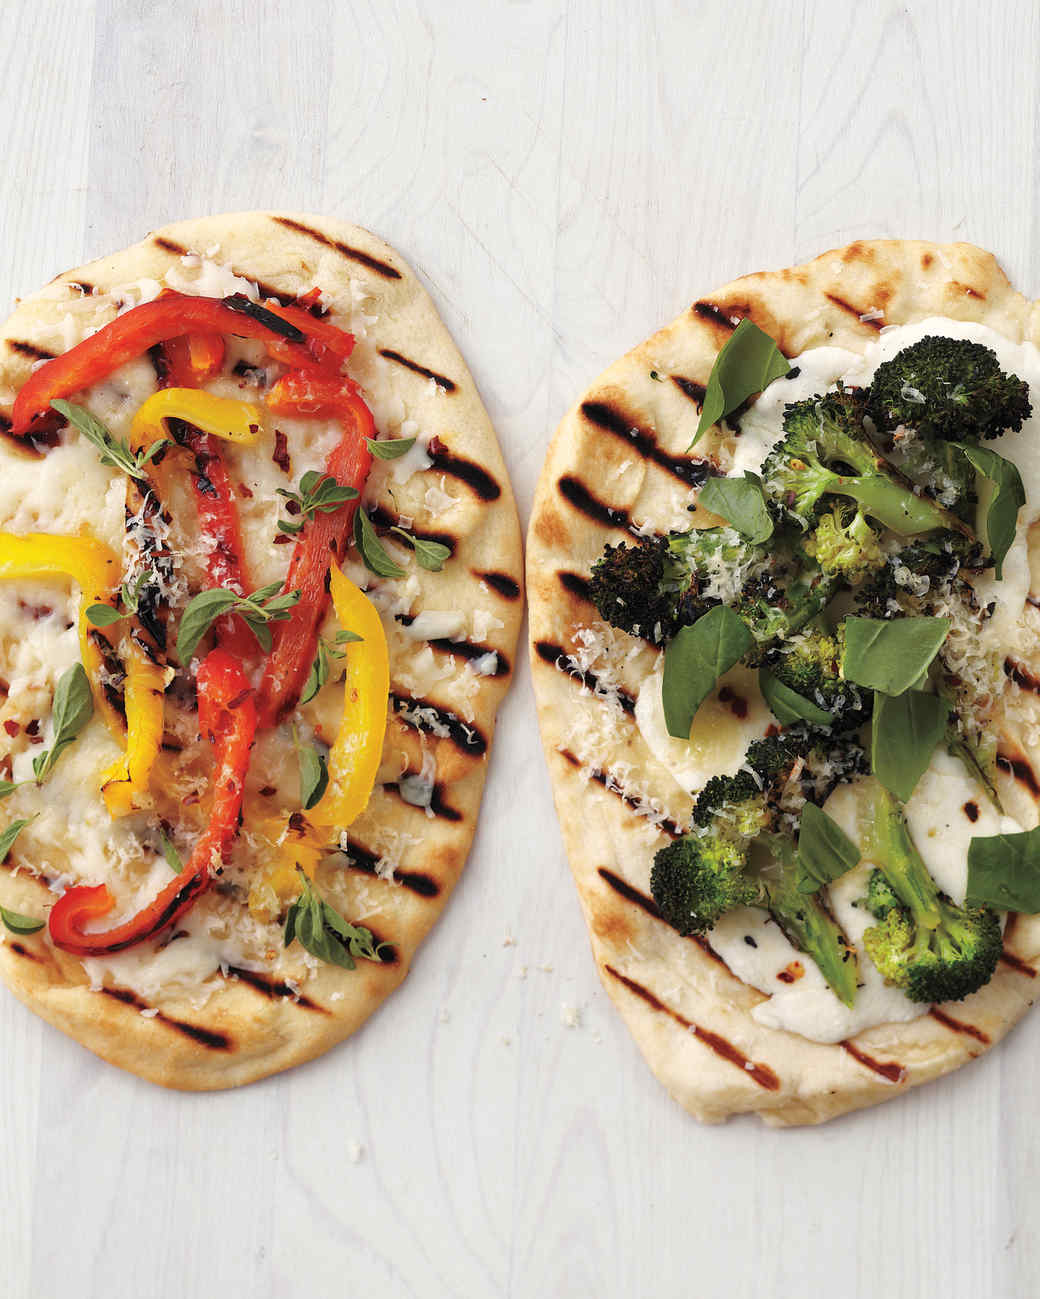 Grilled Tomato and Basil Pizzas forecasting